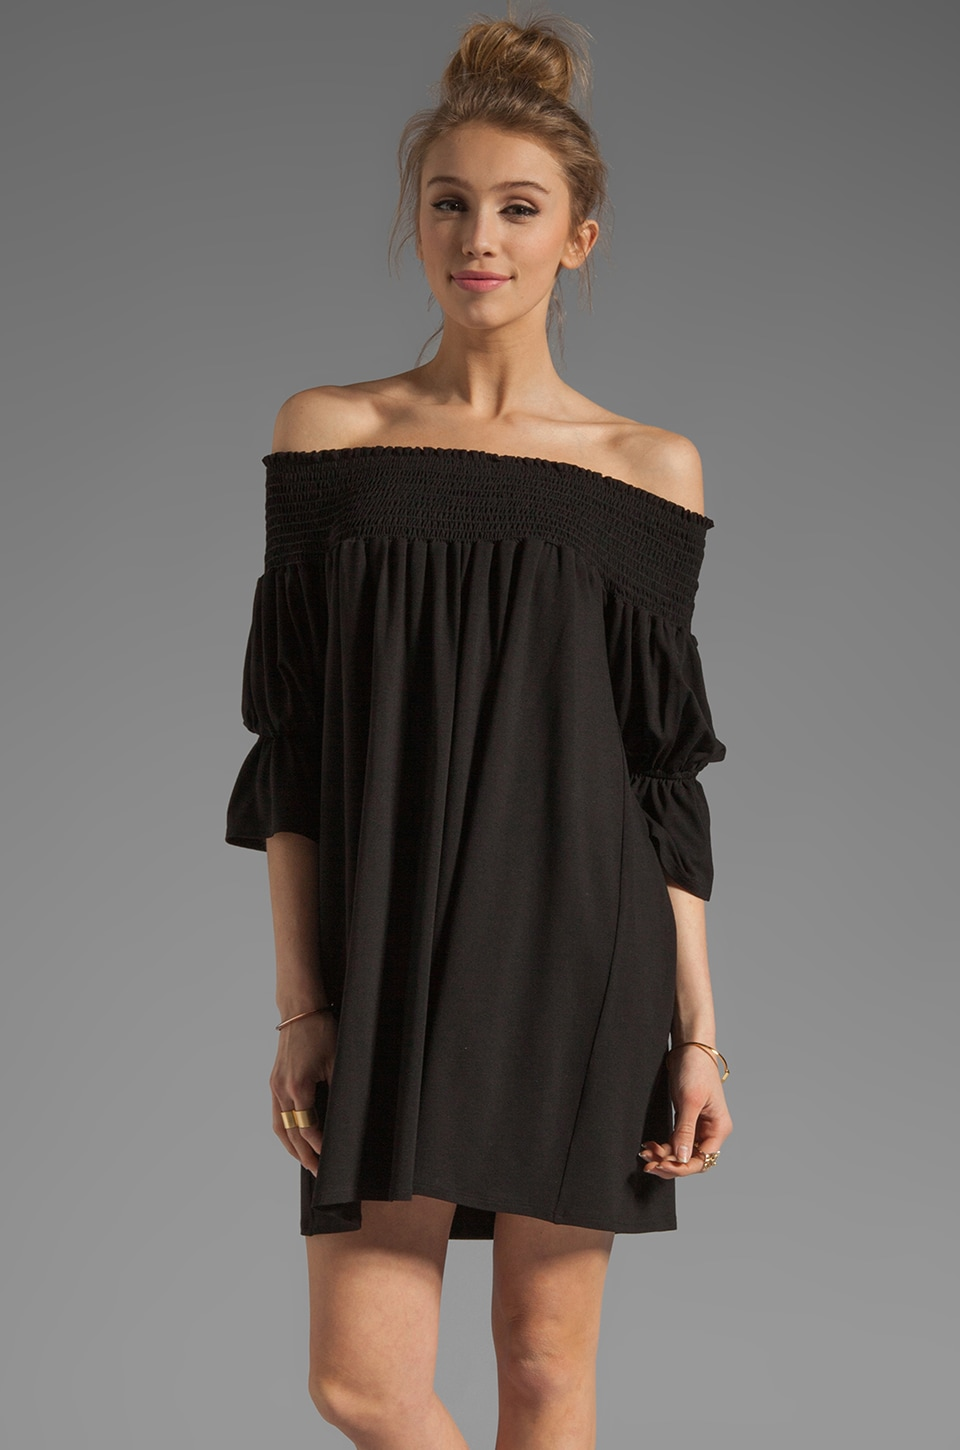 James & Joy Audrey Off the Shoulder Dress in Black